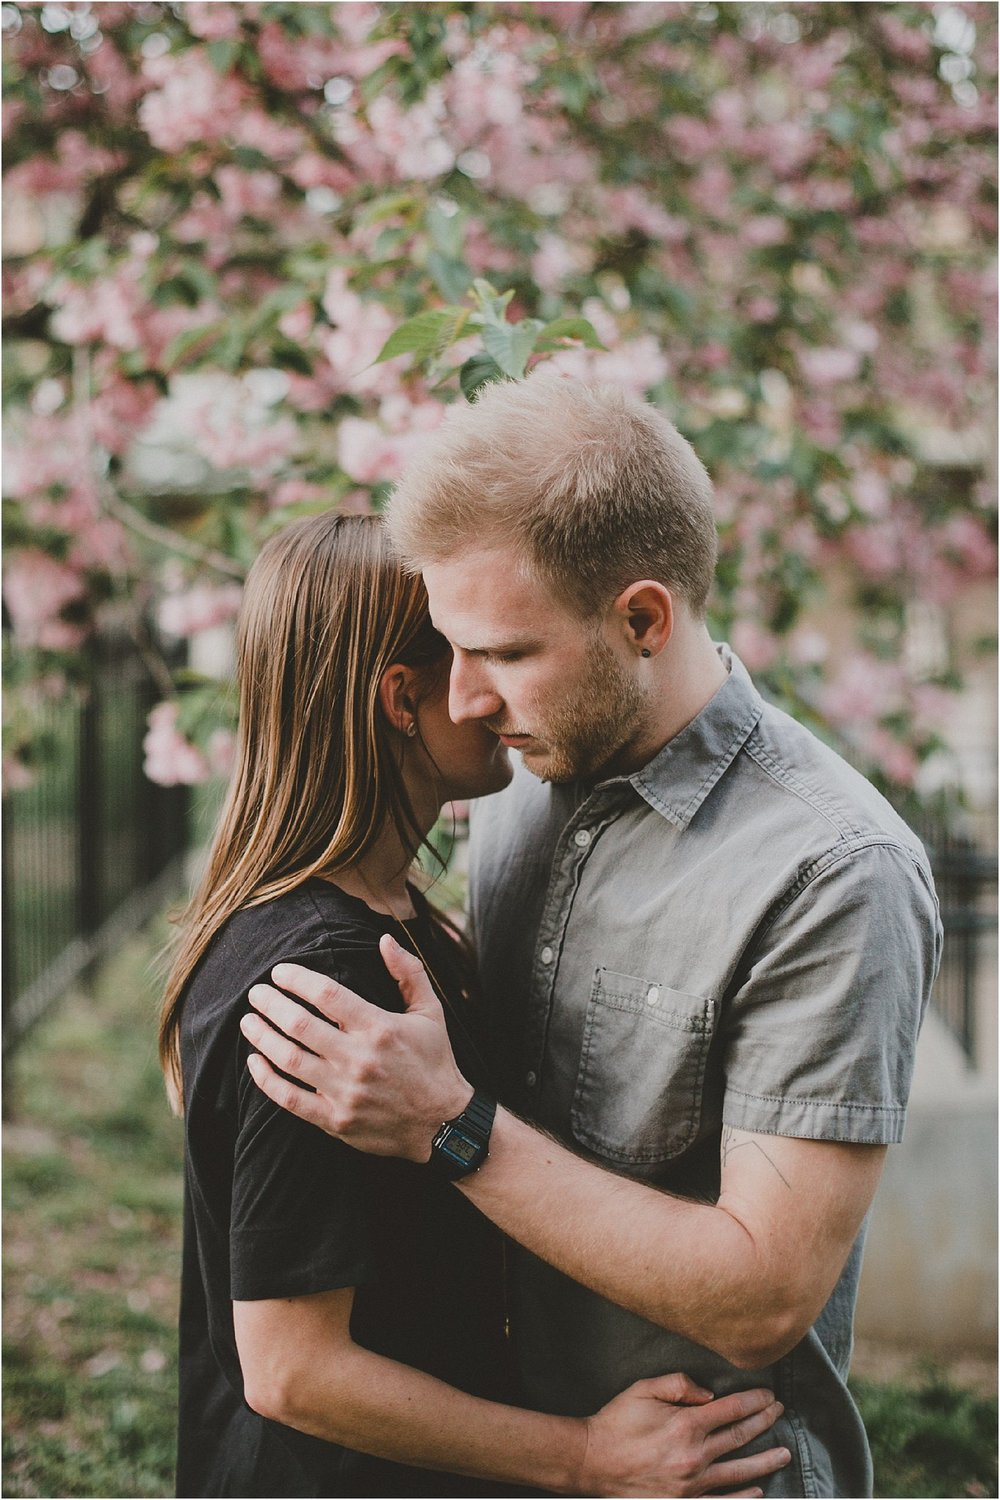 PattengalePhotography_Andrew&Allison_Soulard_SaintLouis_Engagement_Urban_Hipster_Boho_Wedding_Photographer_Missouri_Couple_PattengalePhotography__0059.jpg